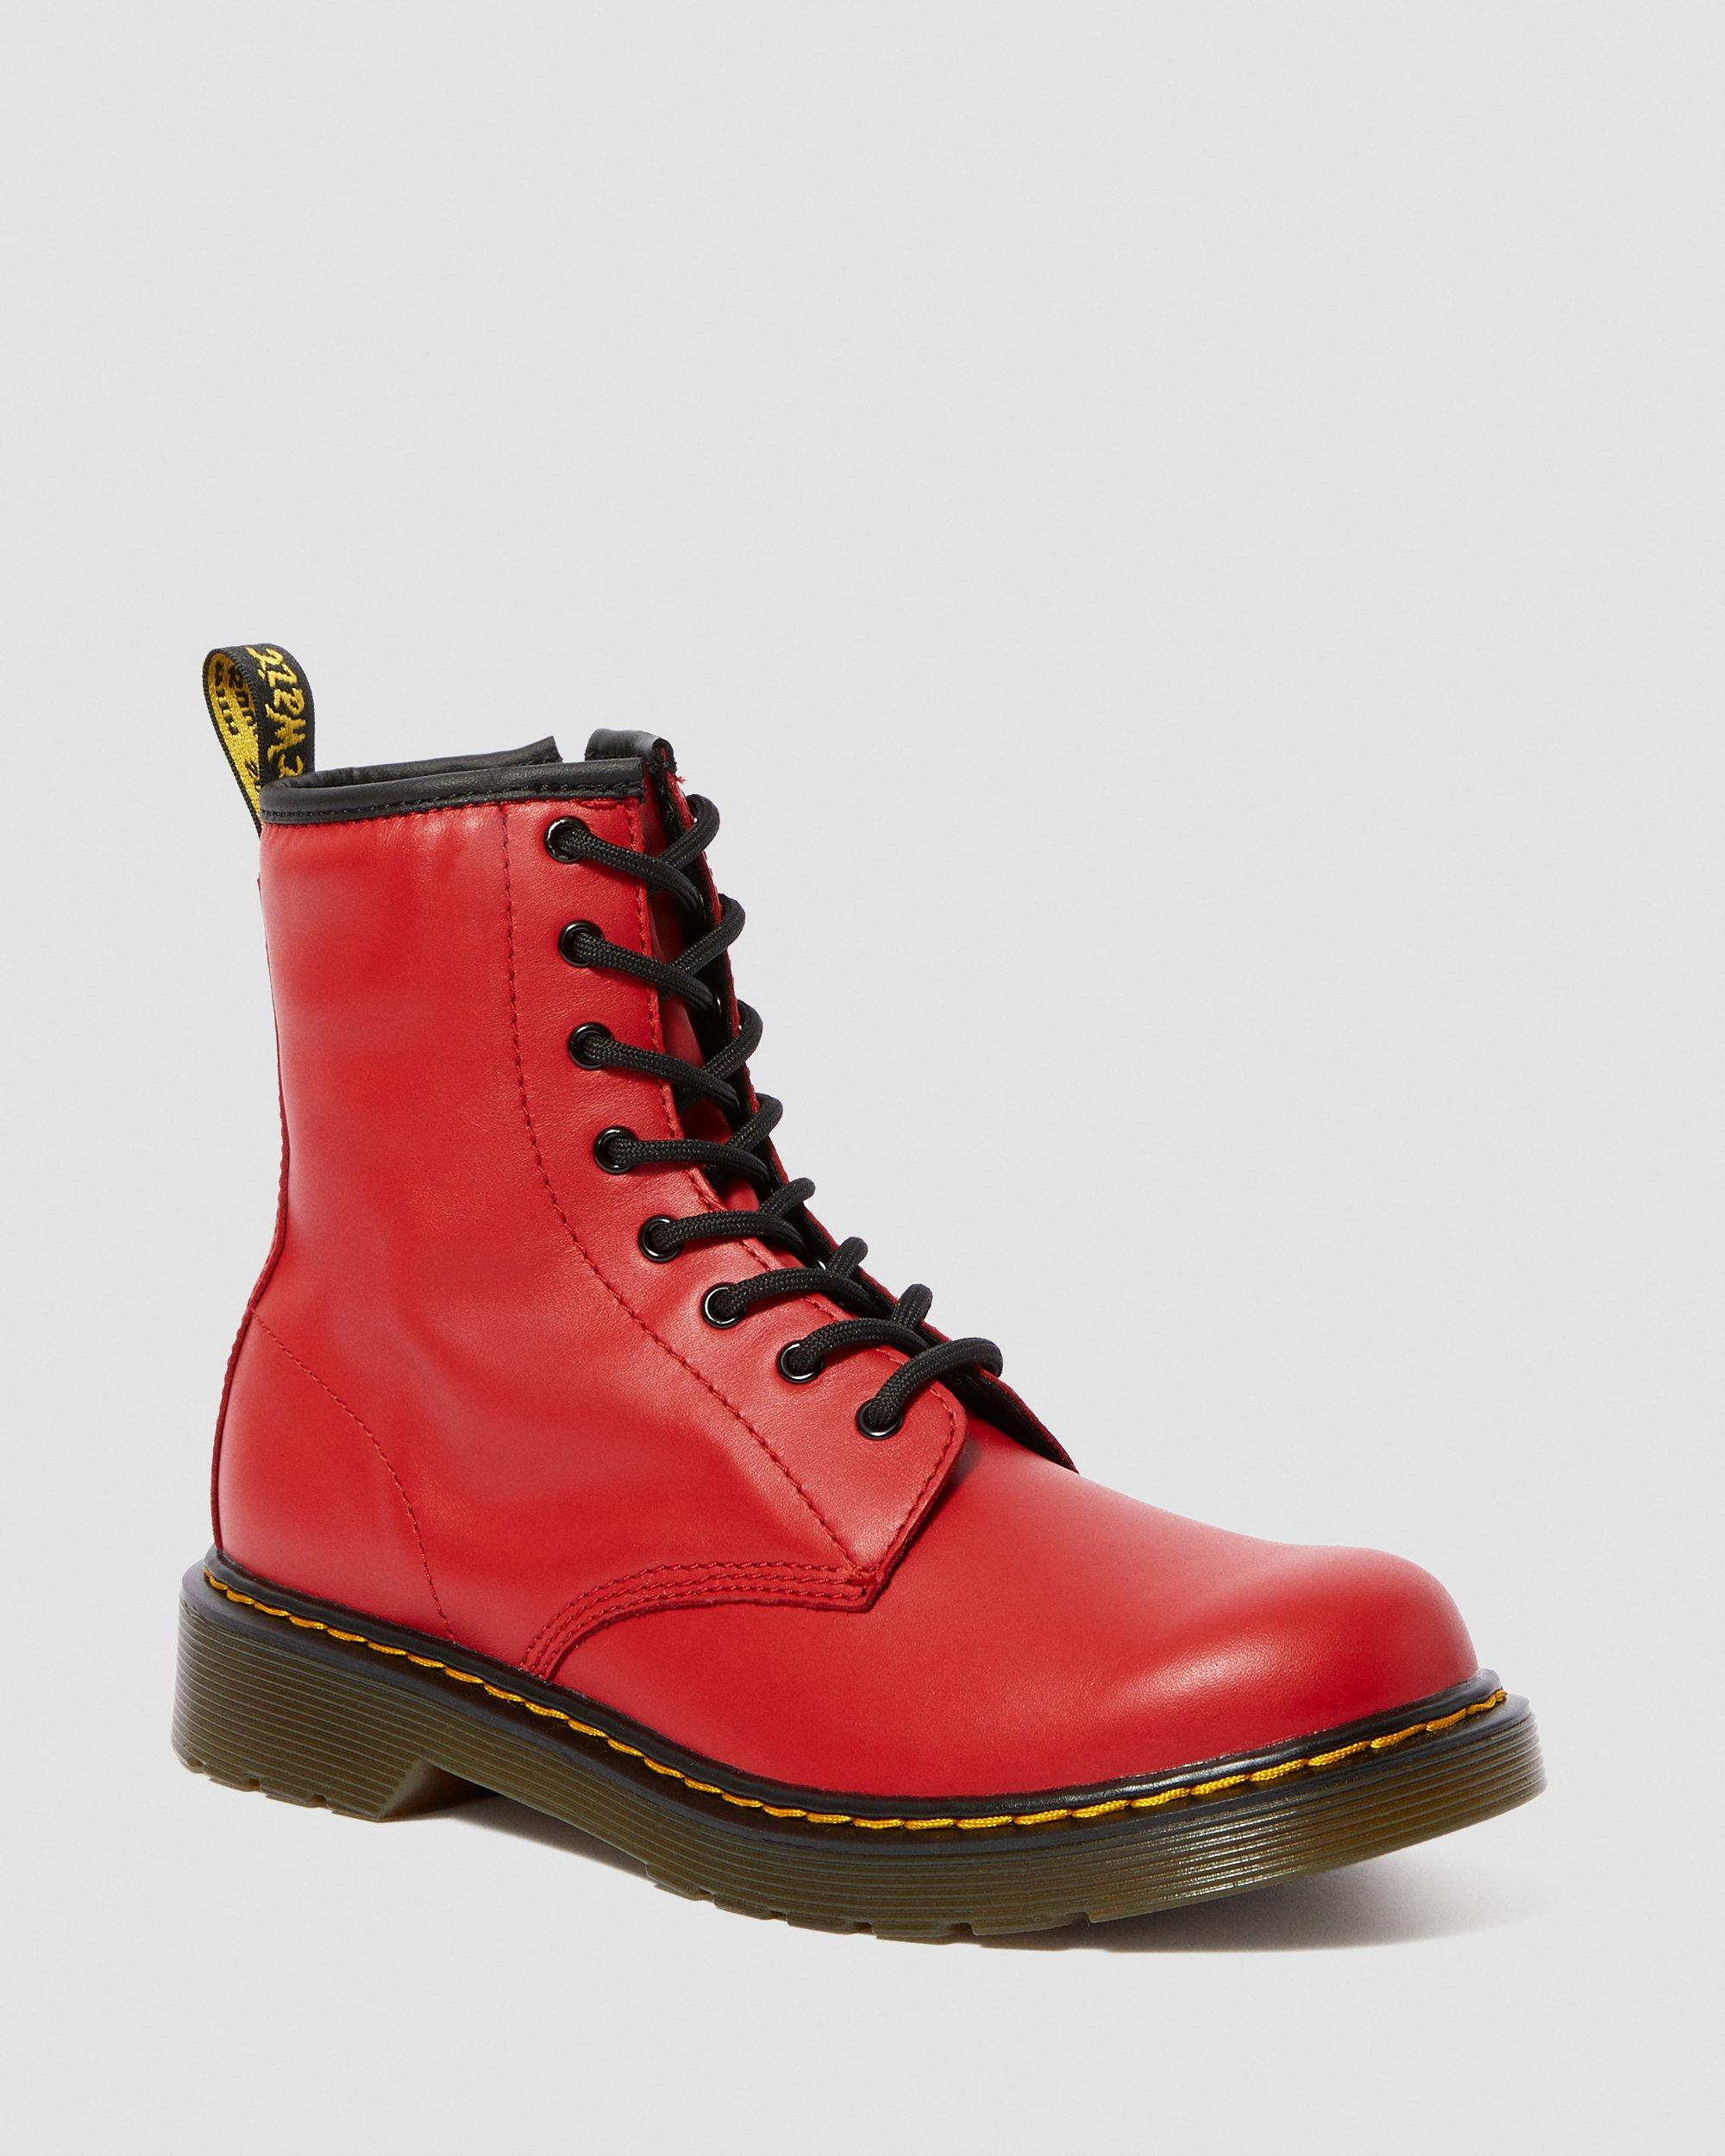 YOUTH 1460 LEATHER LACE UP BOOTS | Dr